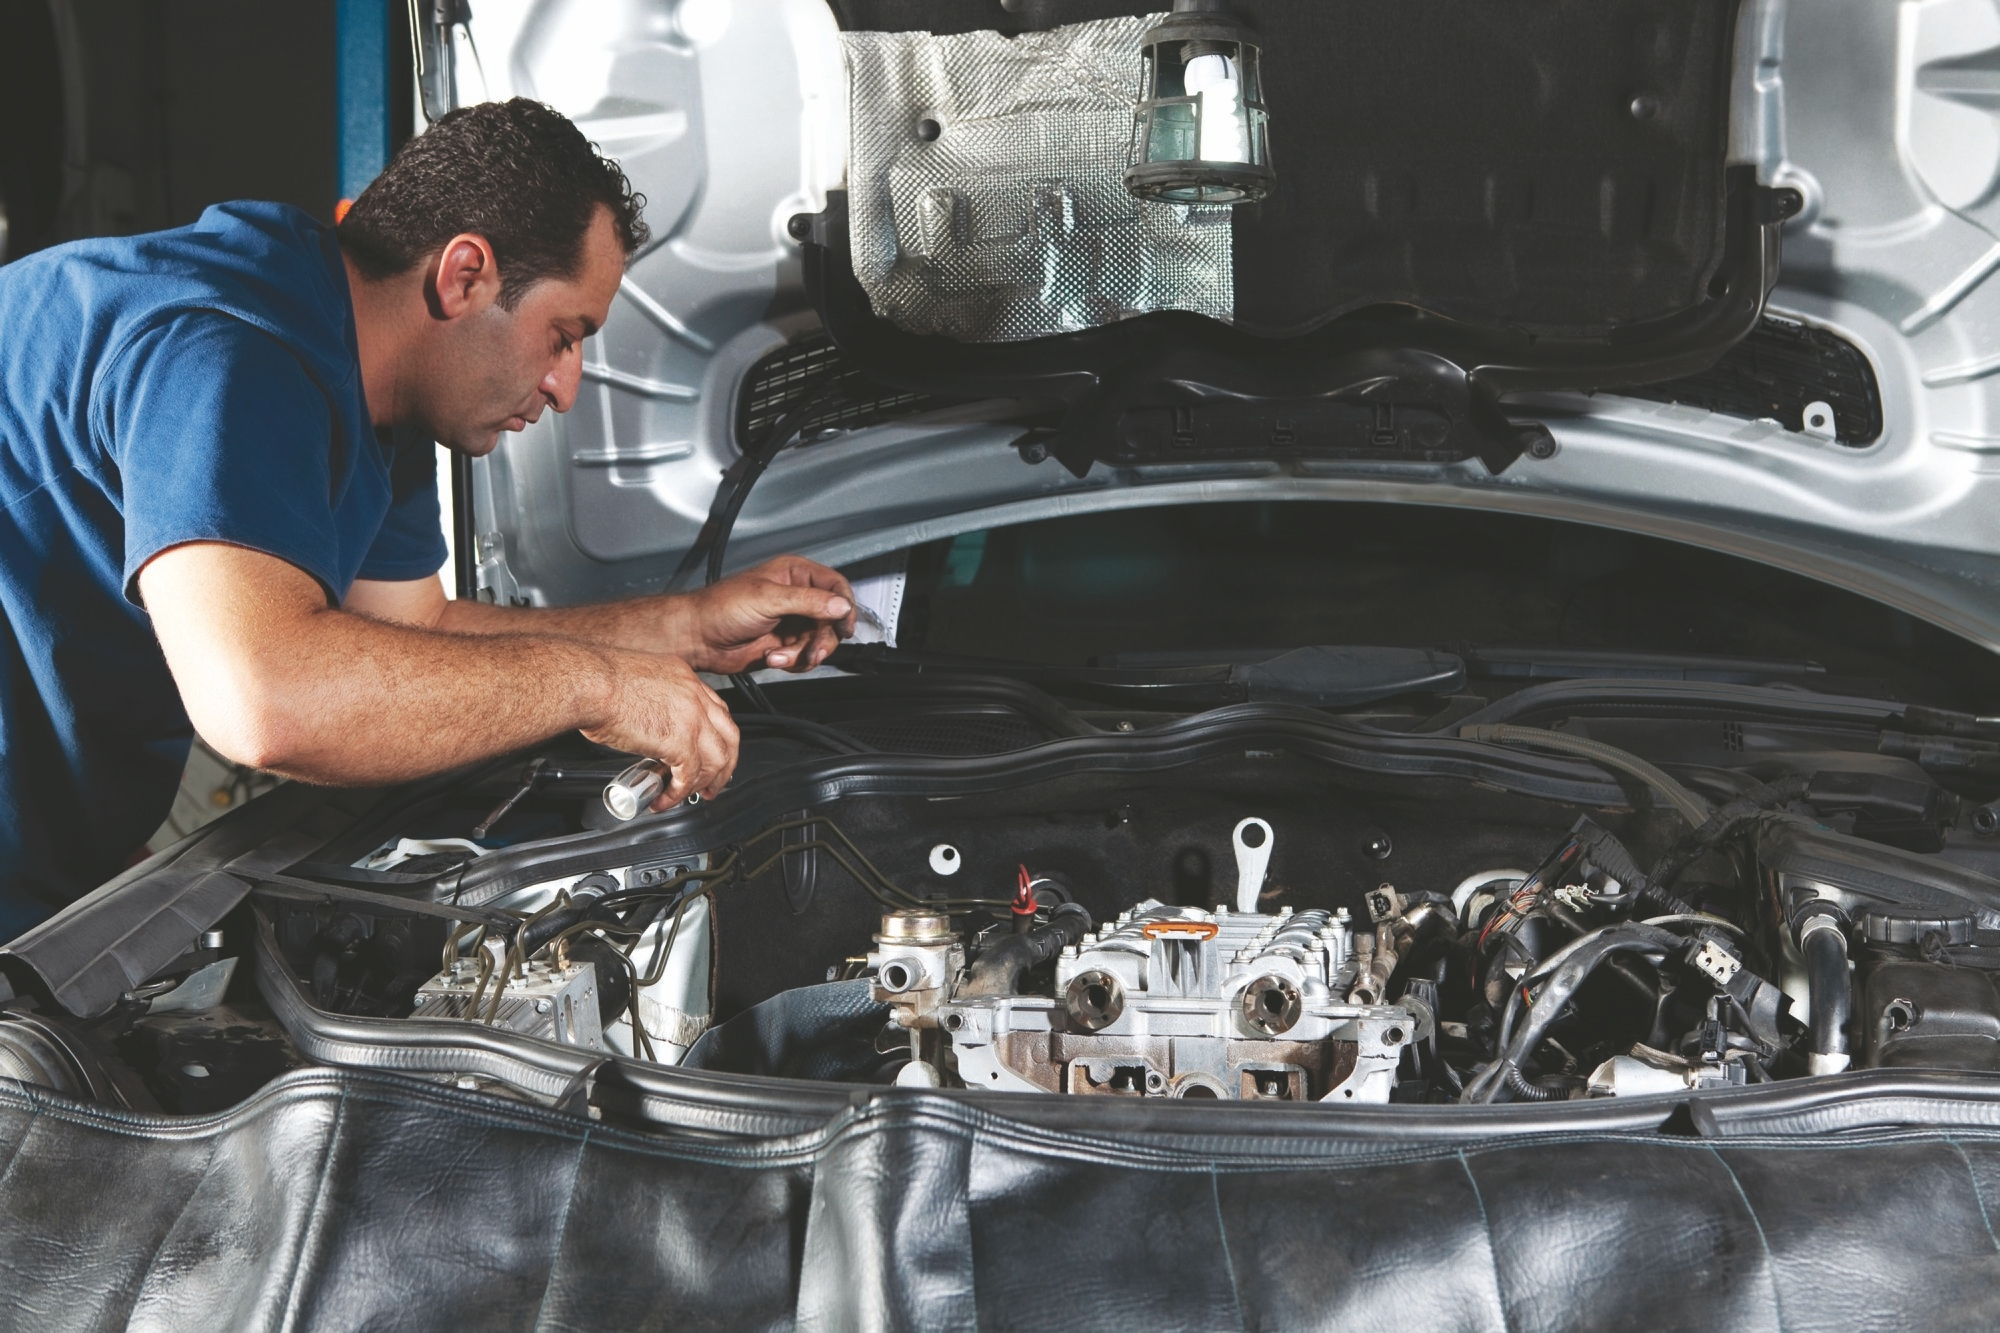 In a Consumer Reports service satisfaction survey, most car owners say they prefer taking their vehicles to independent mechanics for repairs, often because they are less expensive than dealers.